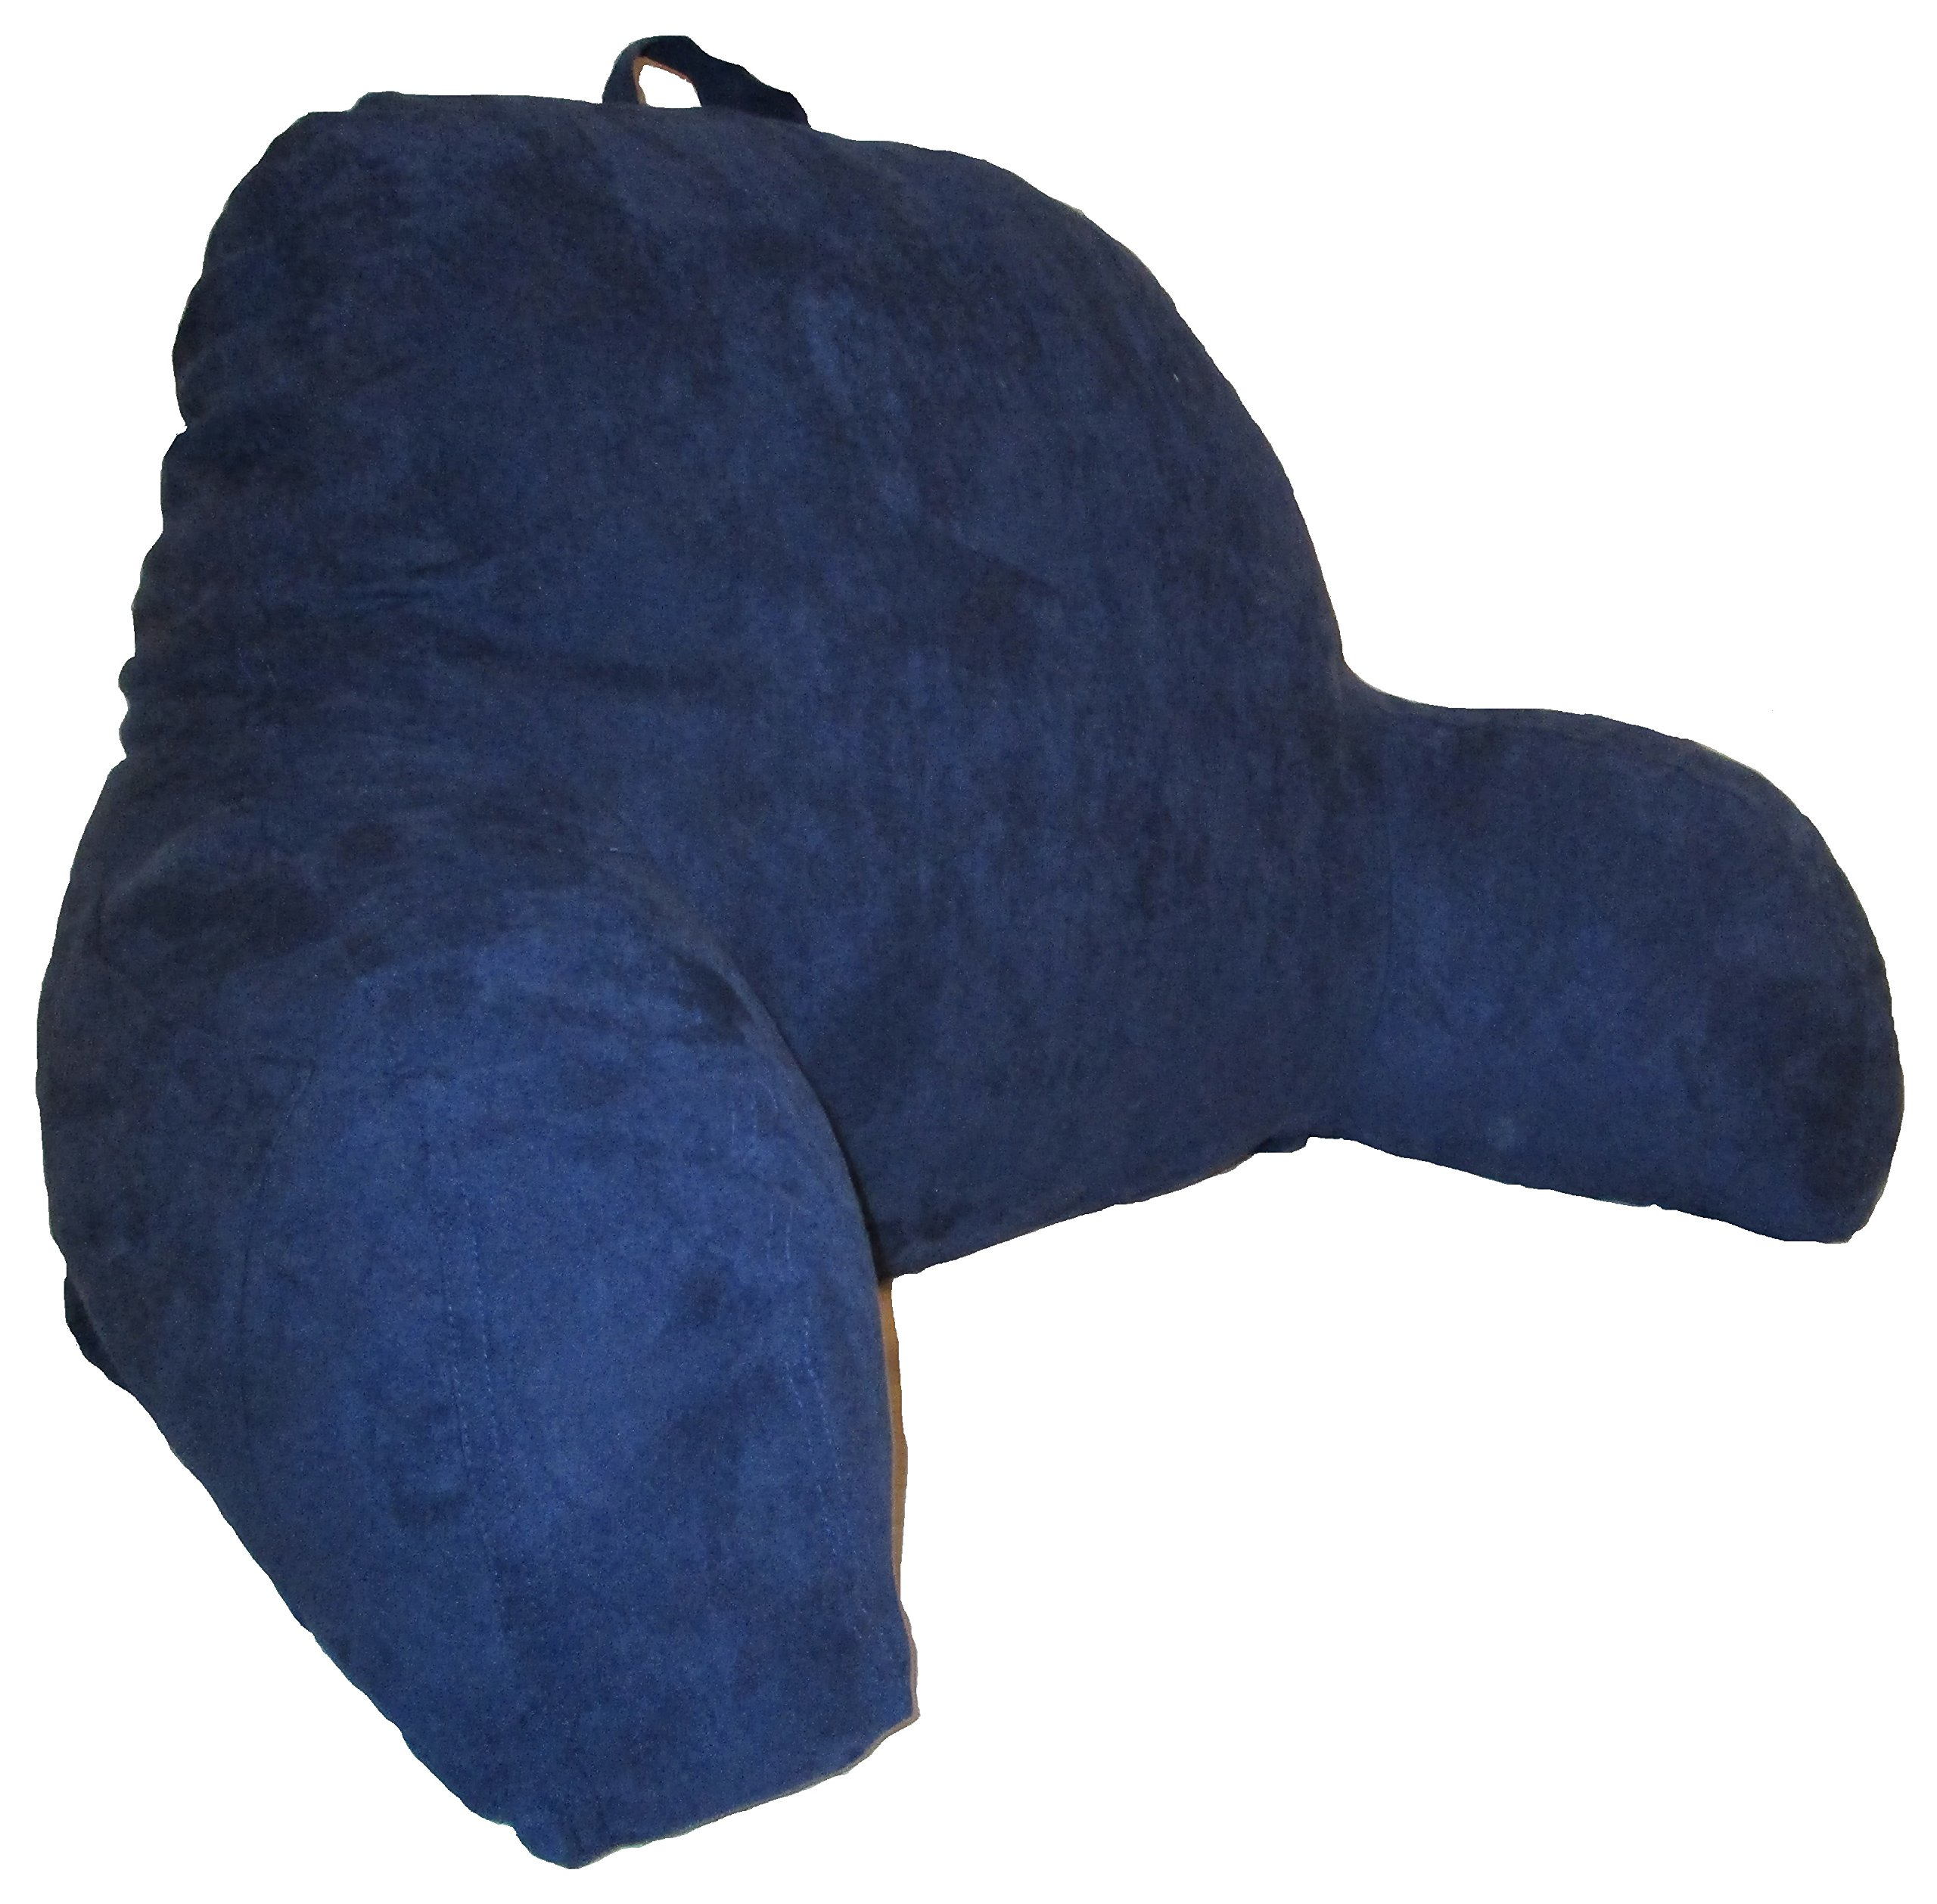 D&M Bedding Microsuede Bedrest Pillow - Navy